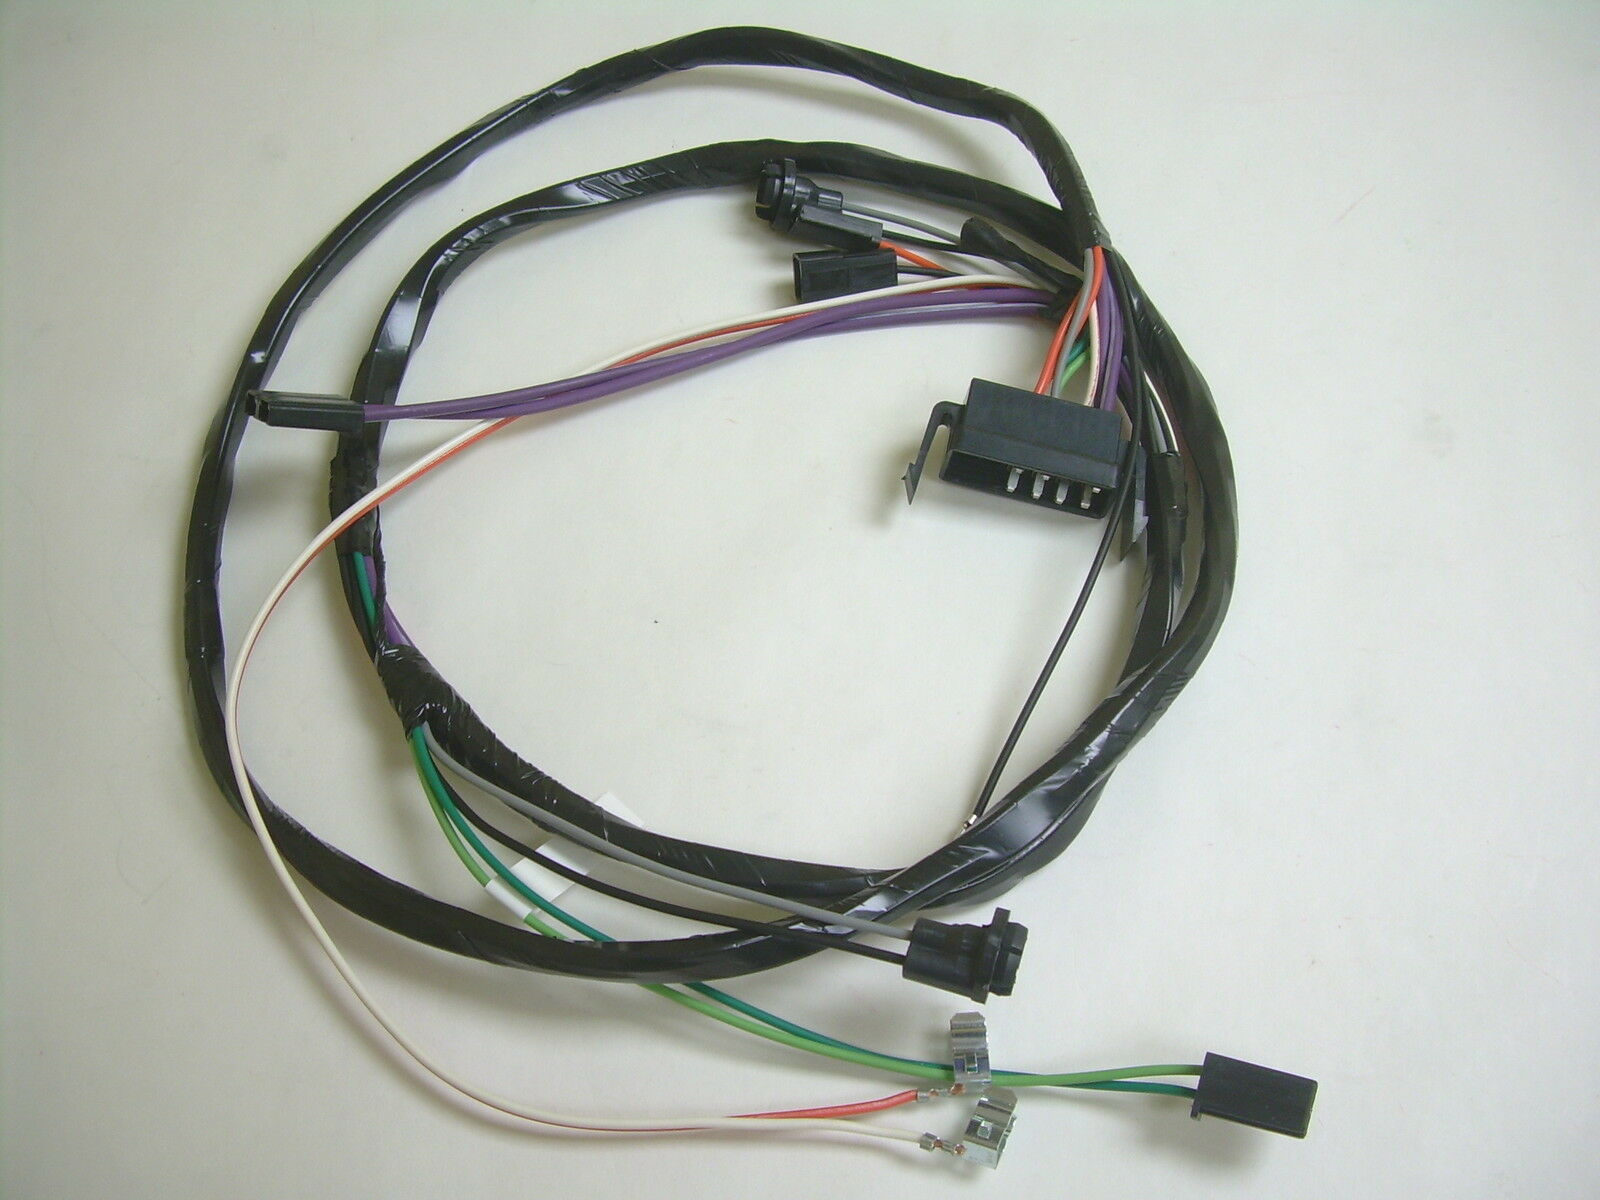 1 of 5Only 1 available 1966 Chevy Impala SS Console Wiring Harness  Automatic without Console Gauges